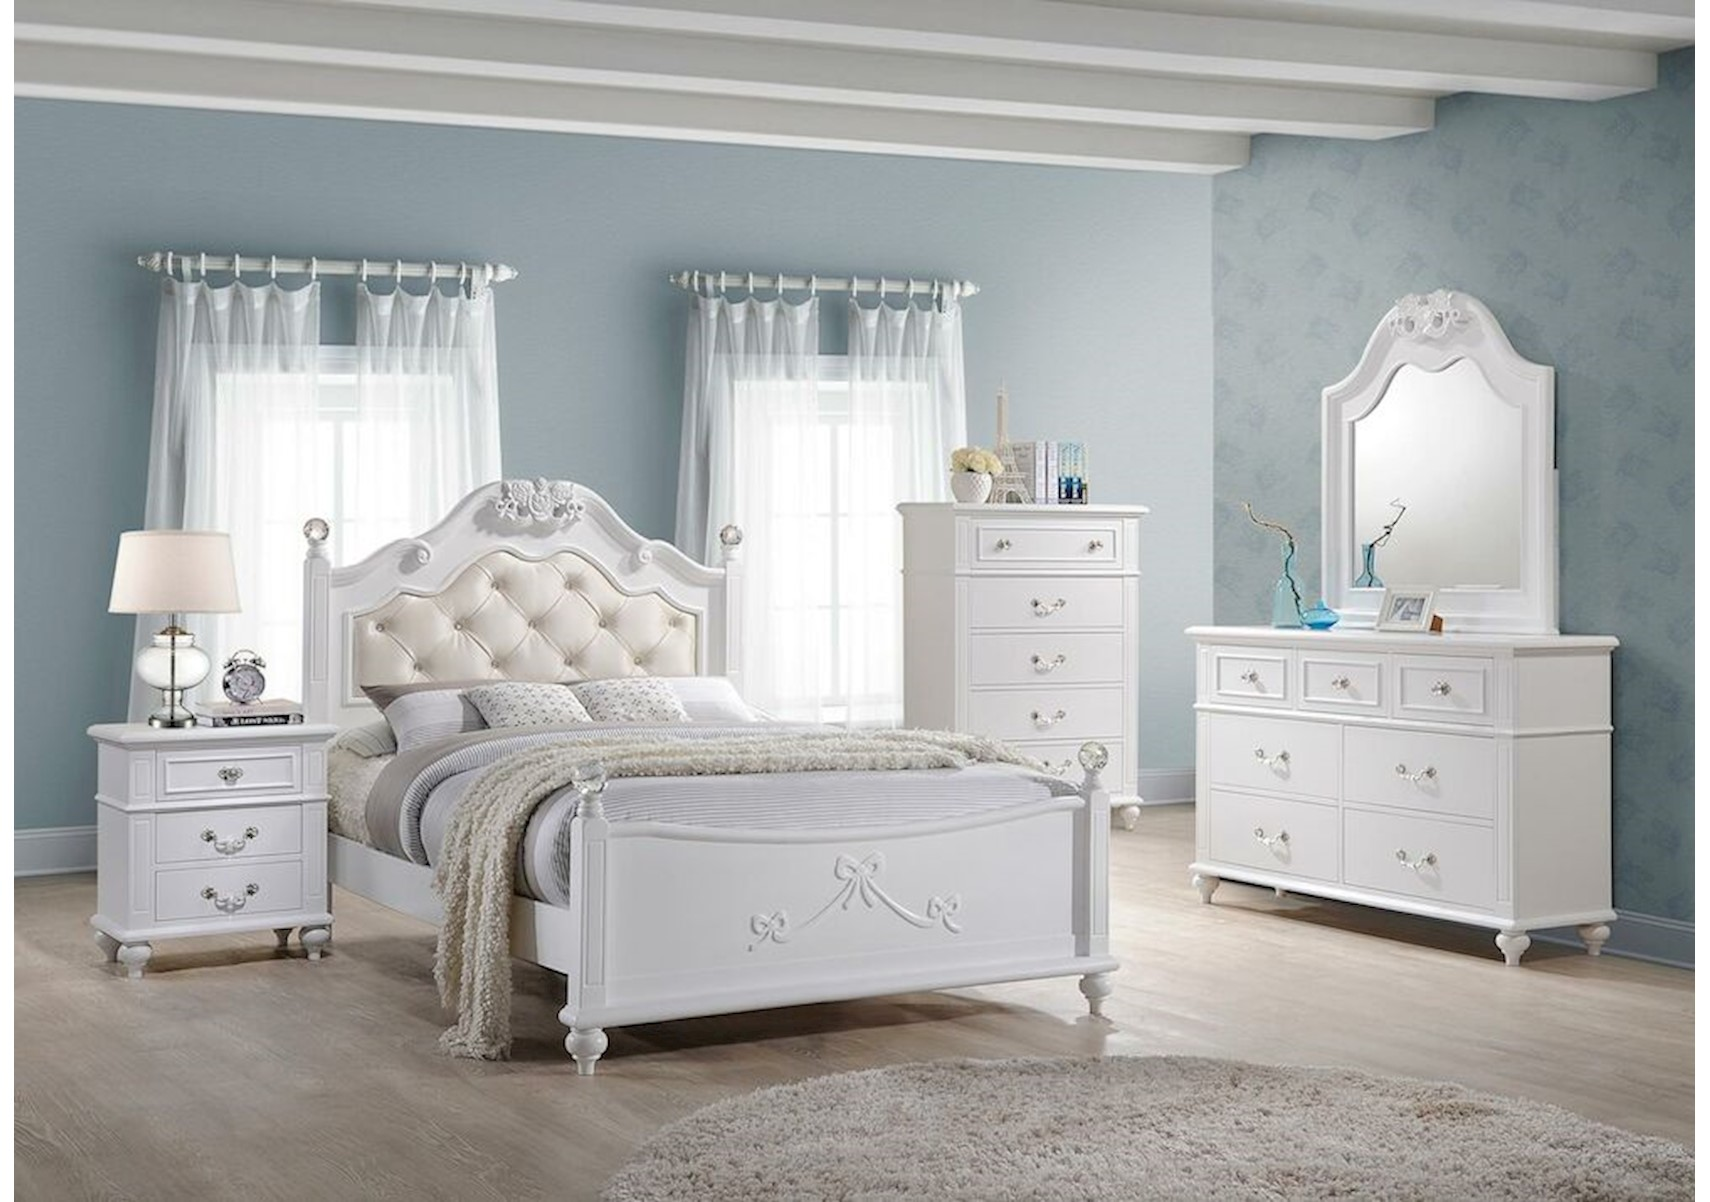 Lacks Alana Kids Twin Bedroom Set